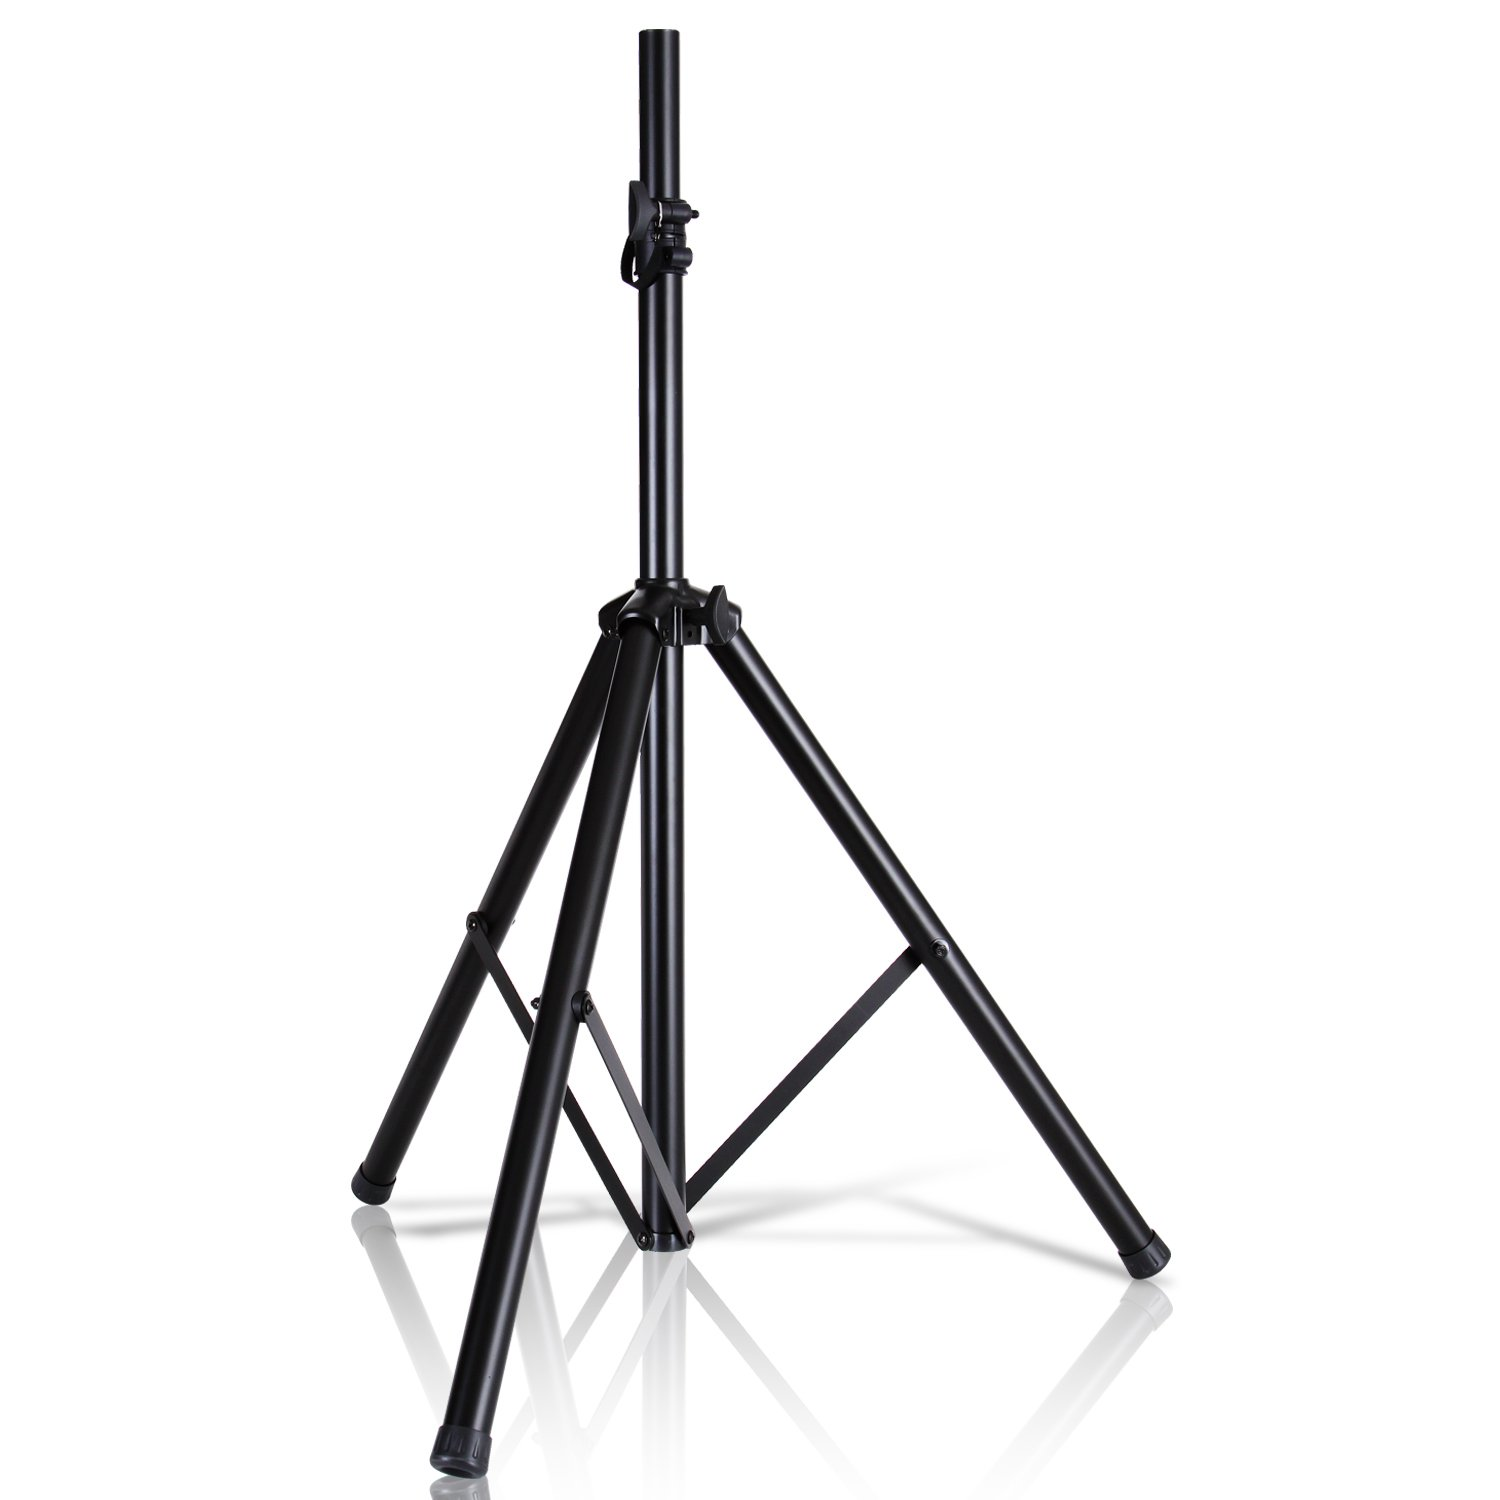 """Universal Speaker Stand Mount Holder - 6'ft Heavy Duty Tripod w/Telescoping Height Adjustment 40"""" to 71"""" 35mm Compatible Insert Knob Style Lock Perfect for On-Stage or in-Studio Use - Pyle AZPSTND2"""